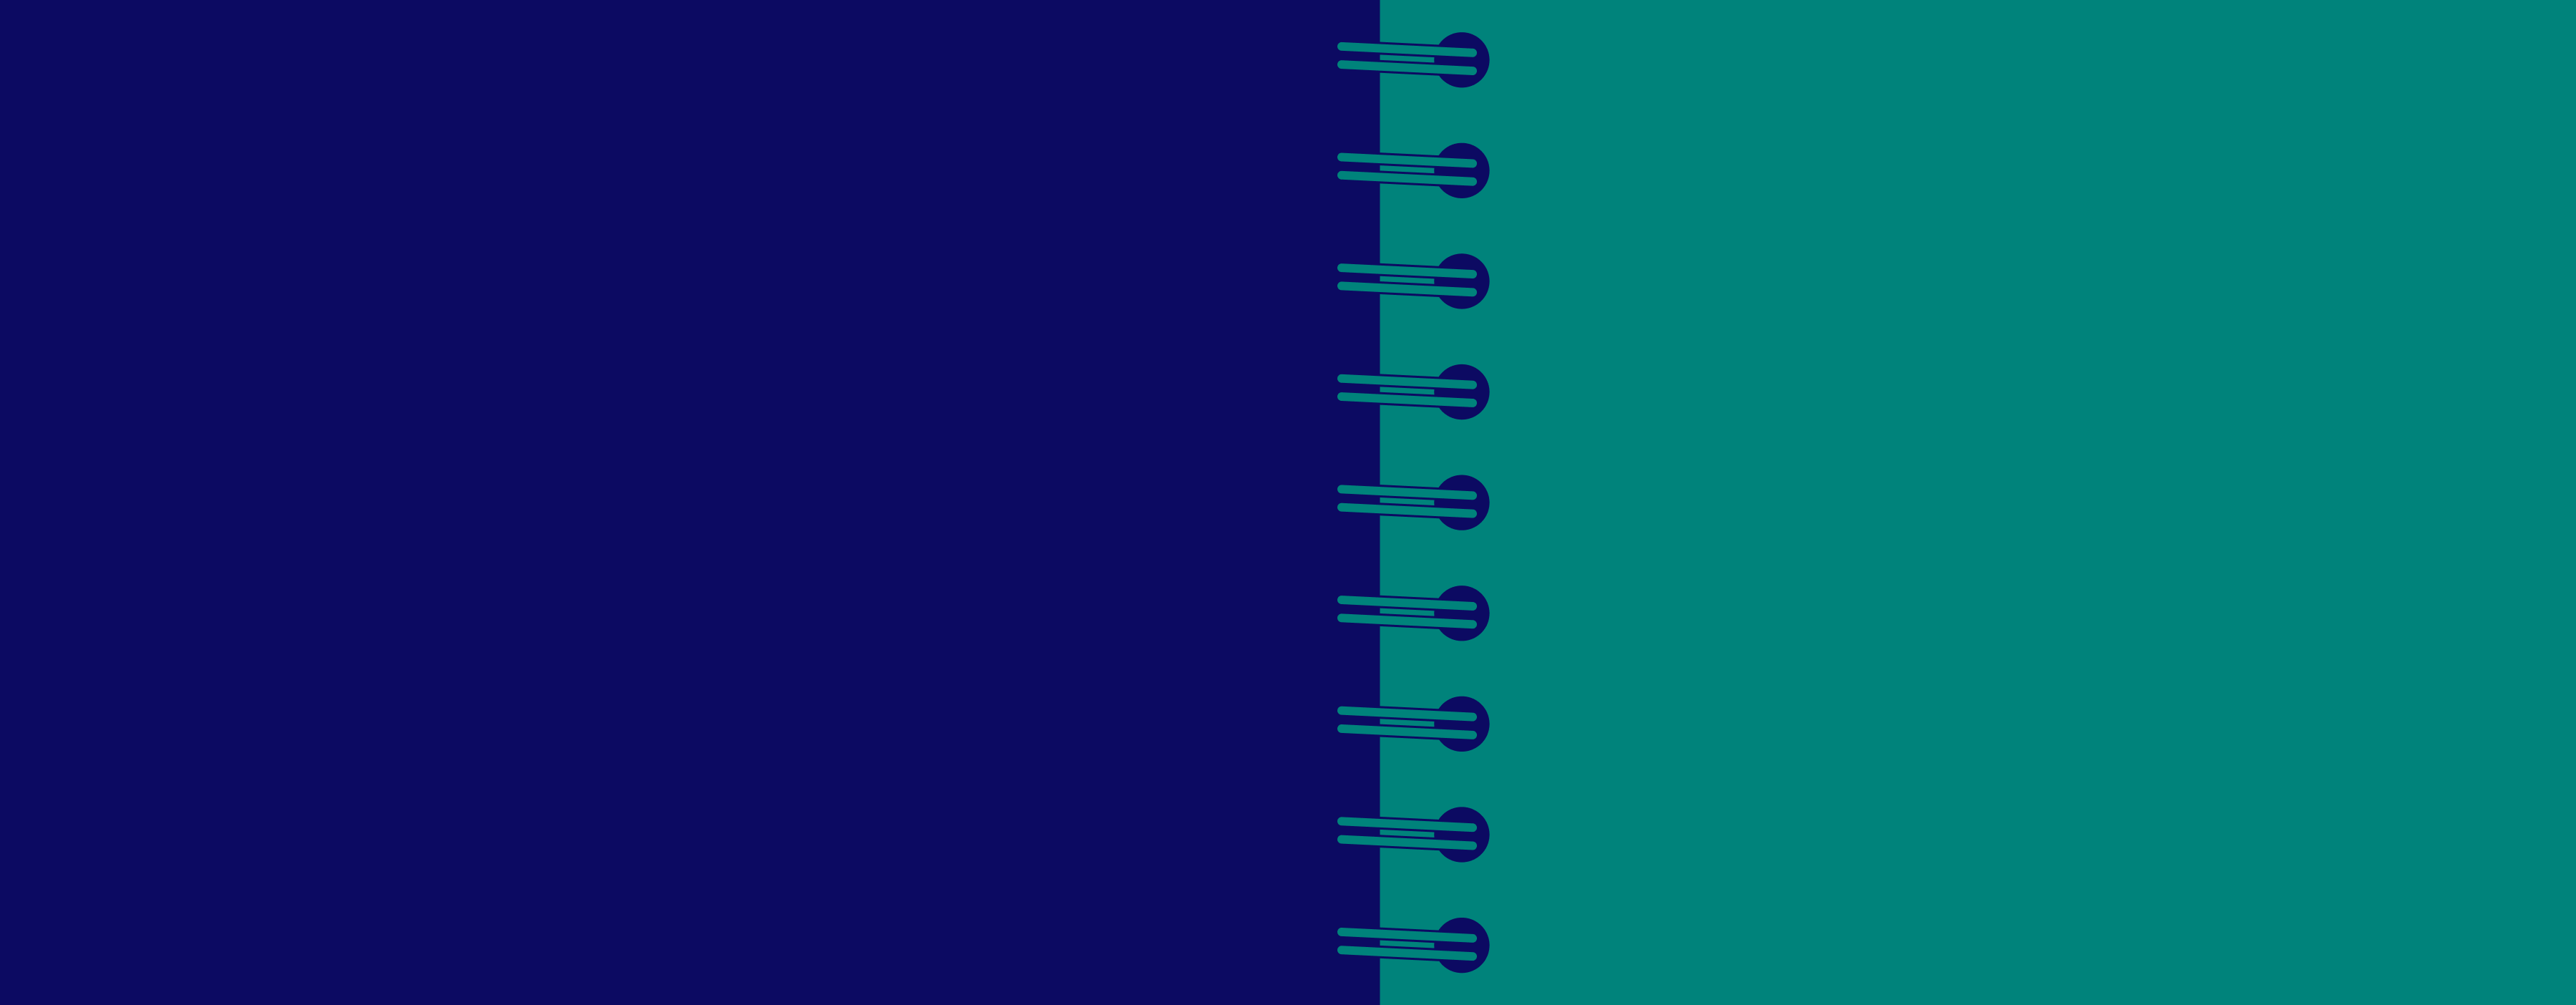 An illustration of a coiled notebook